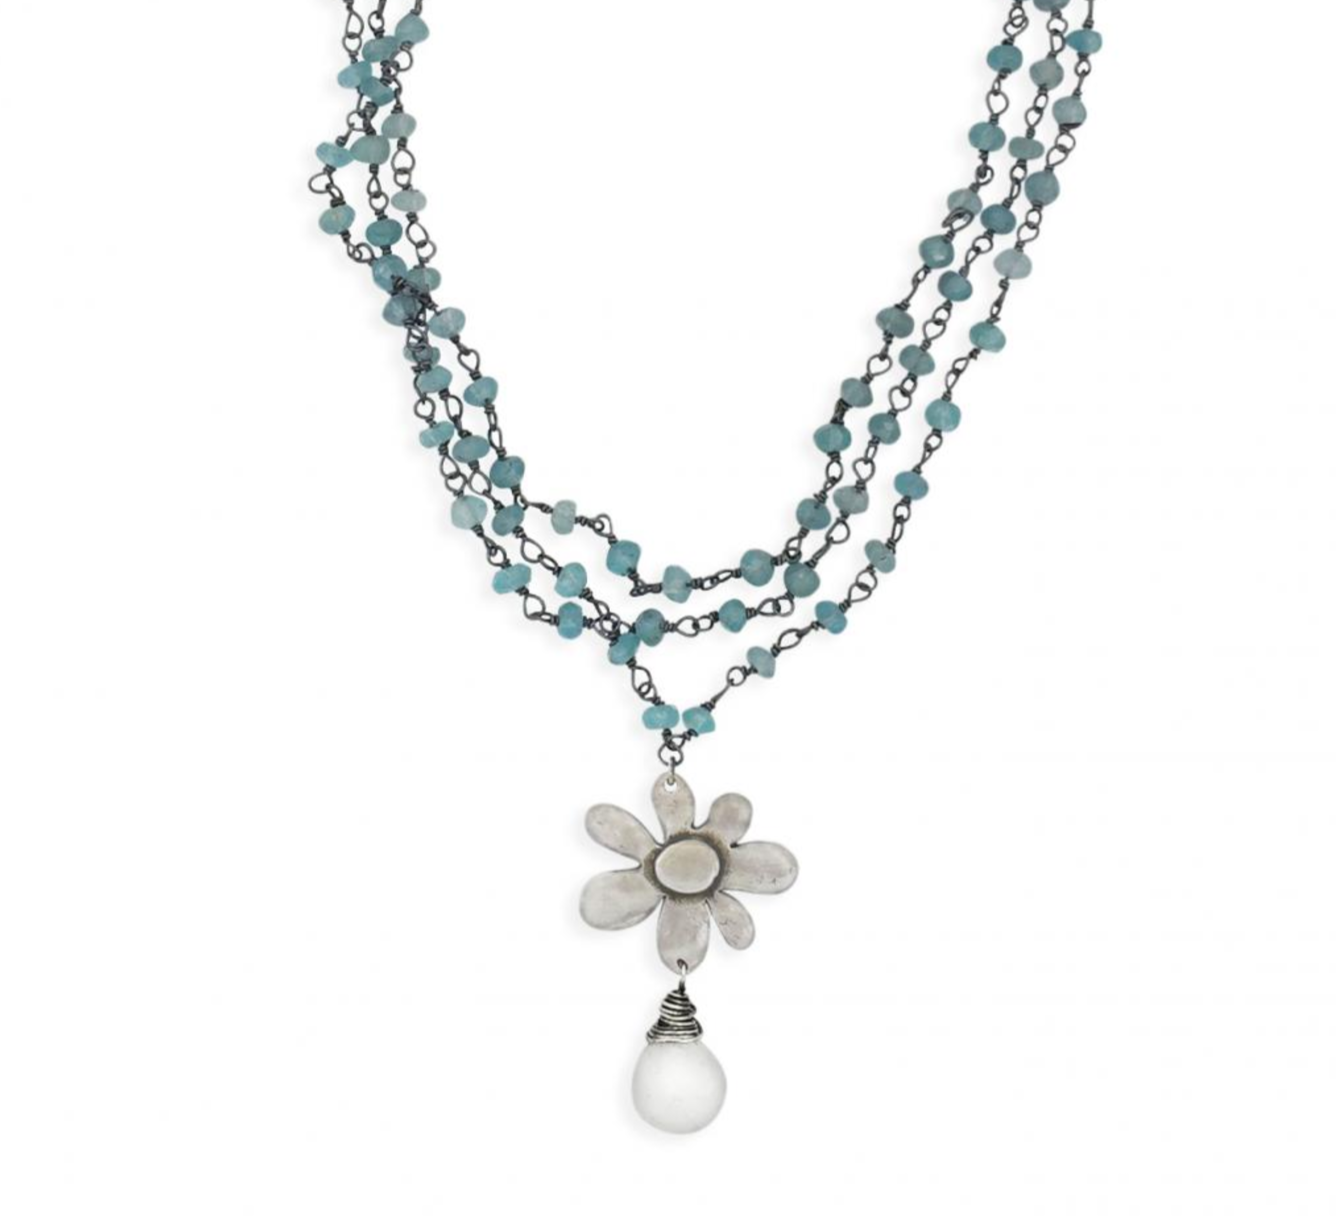 Apatite Flower Necklace - 17 Inches